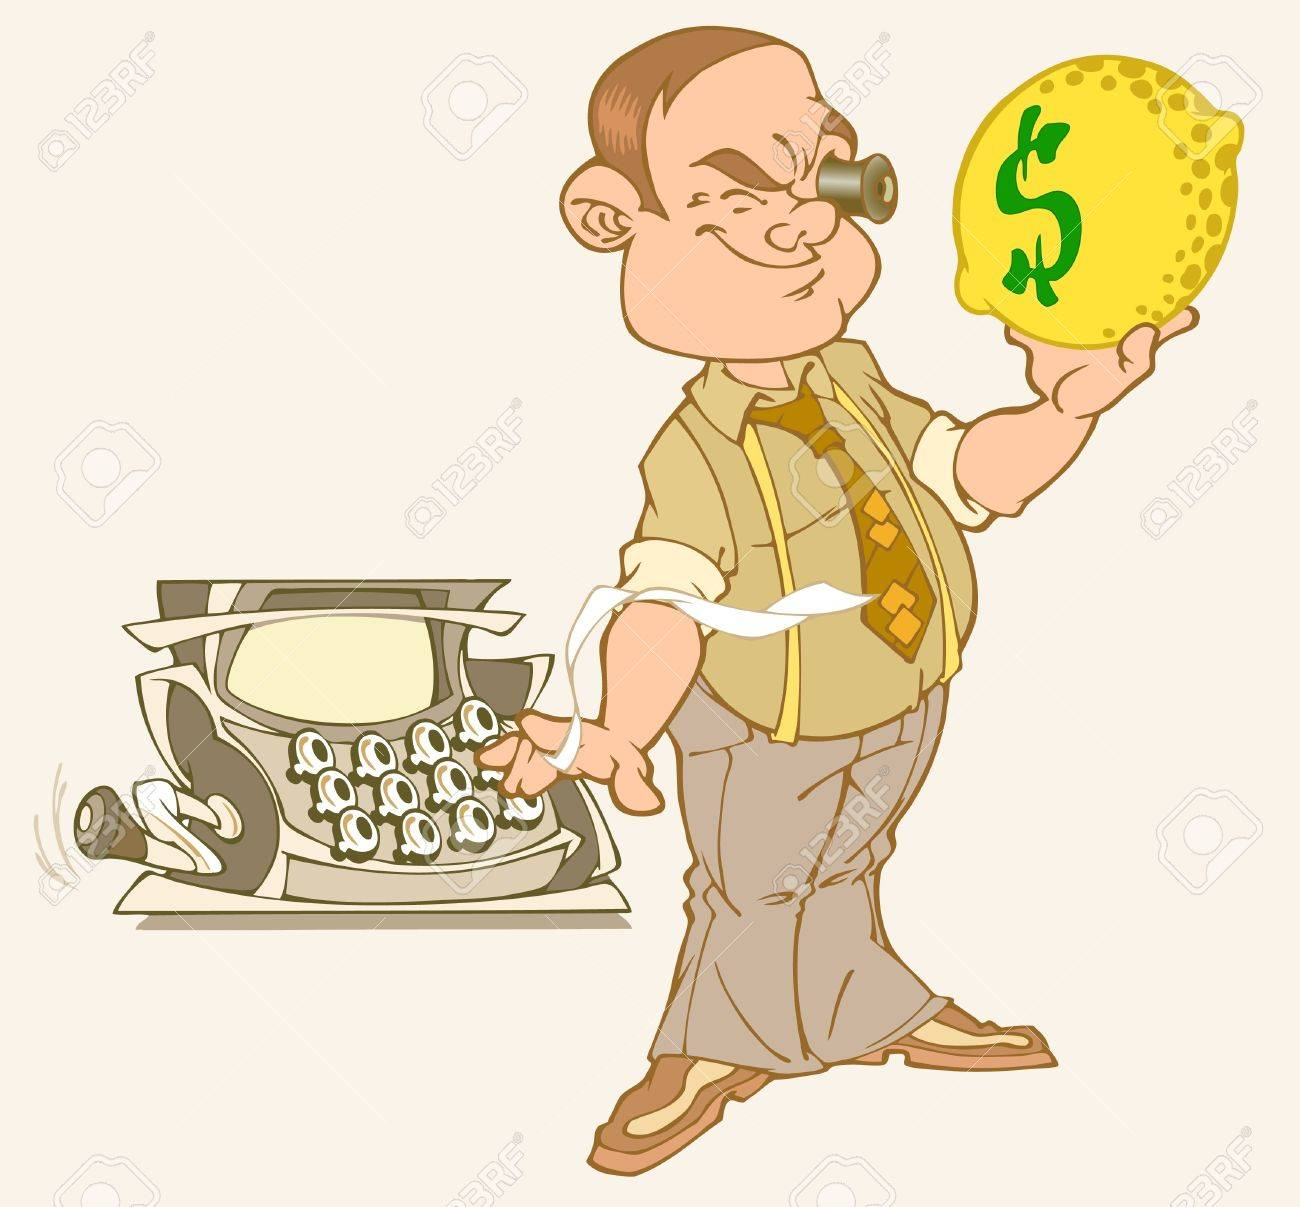 A man holding a lemon with a dollar sign.He looks at it in a monocle.Nearby is the cash register. Stock Vector - 10100957